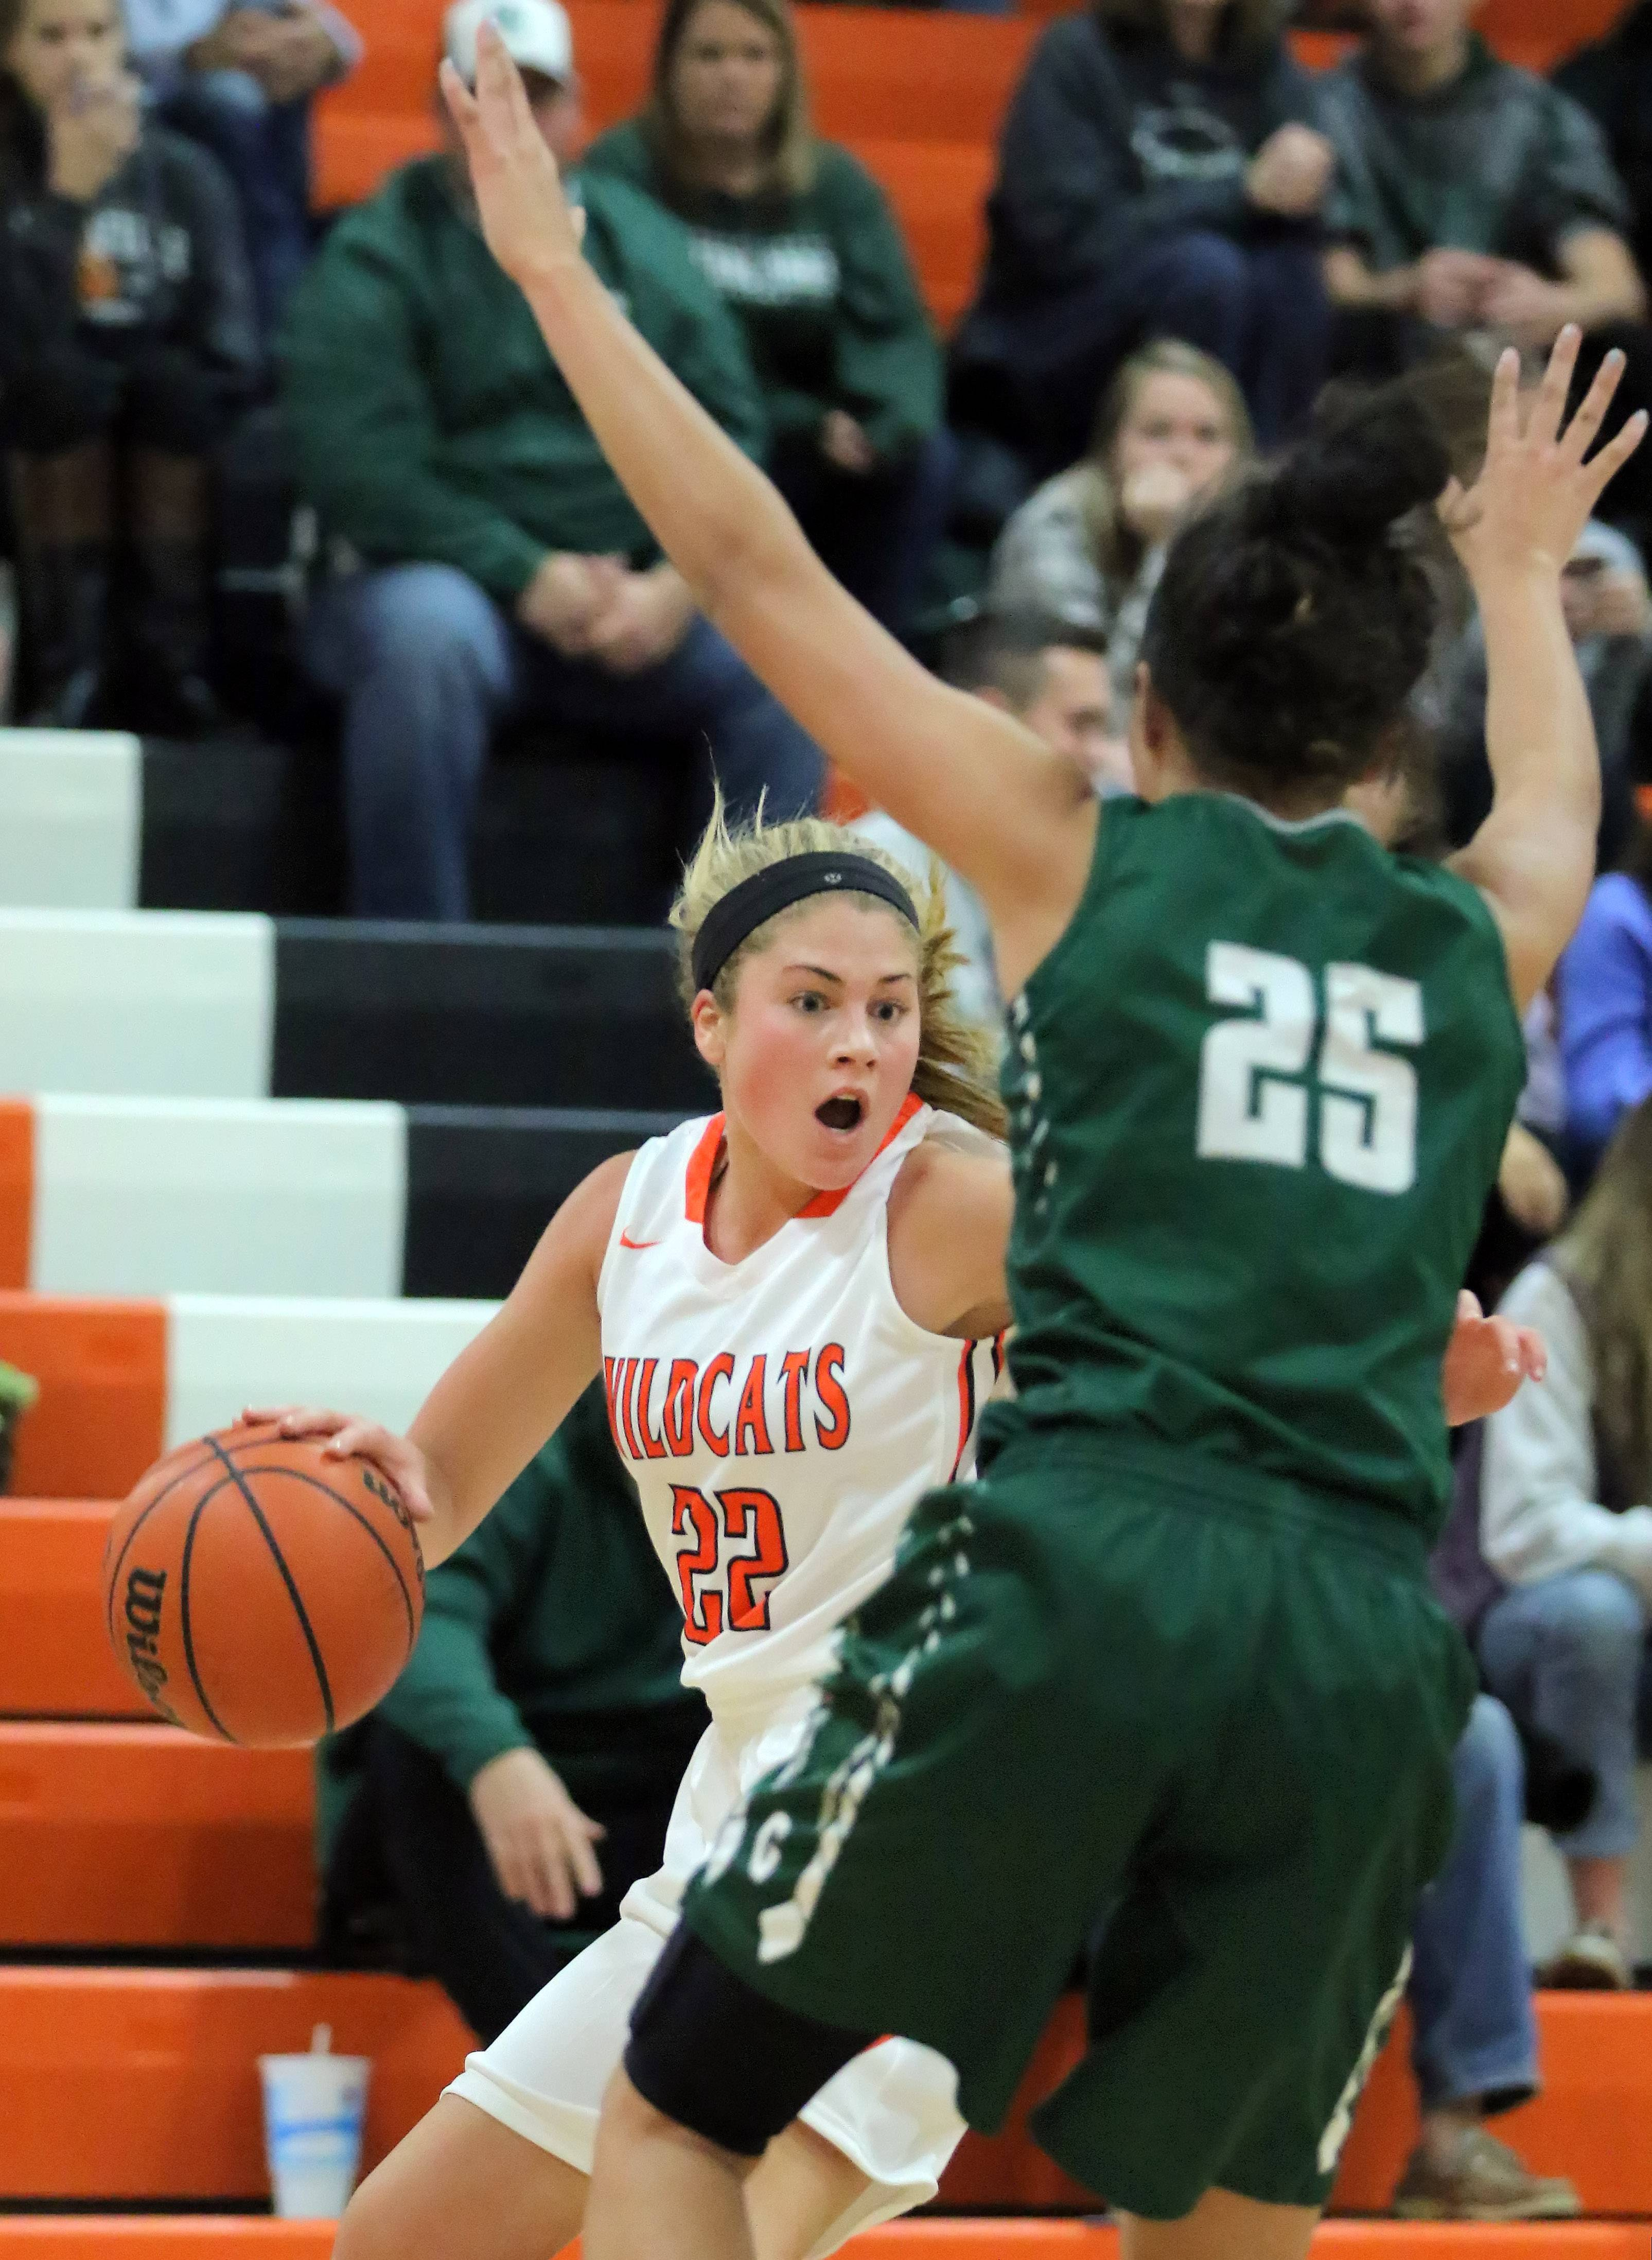 Libertyville's Riley Weis, left, tries to drive past Grayslake Central's Ania Barnes on Tuesday night at Libertyville.